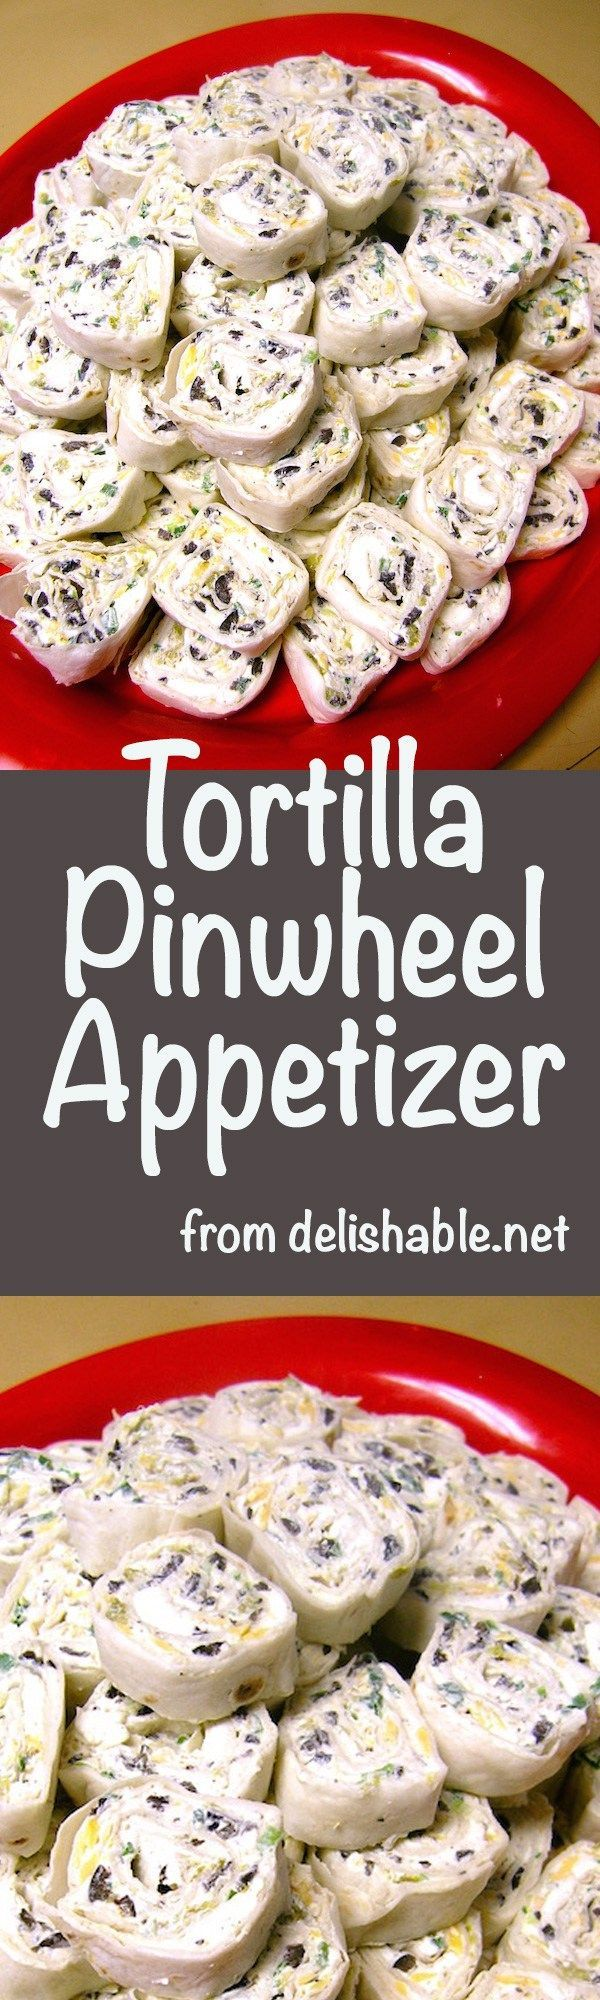 The FUN thing about Tortilla Pinwheel Appetizers is there are so many ways to make them. And they are always a hit at any party or potluck! | delishable.net